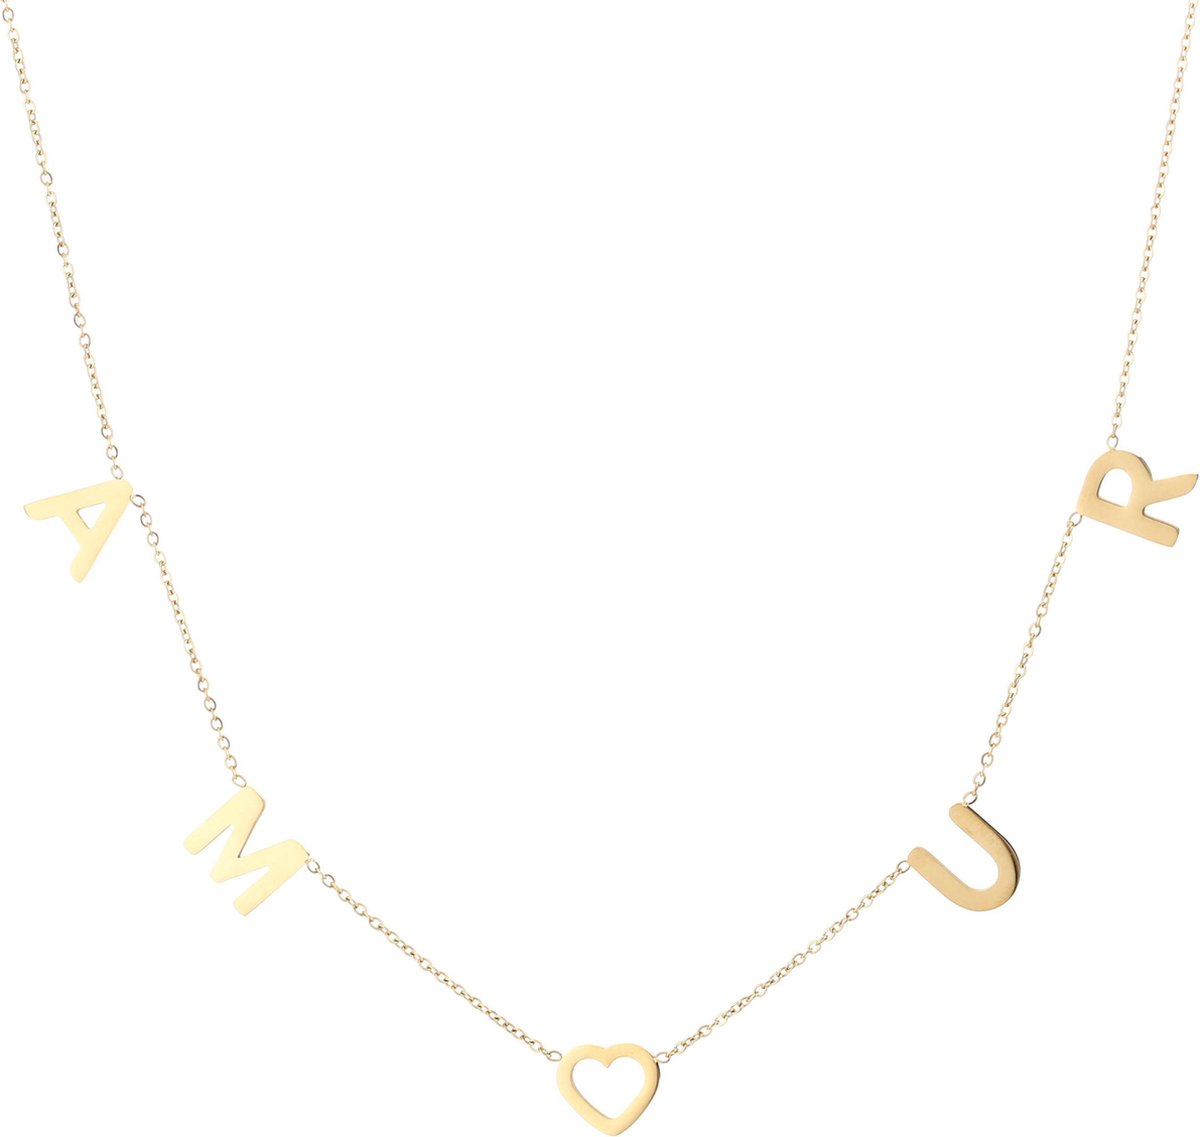 Amour Ketting - Goud -  Stainless steel - Dames ketting